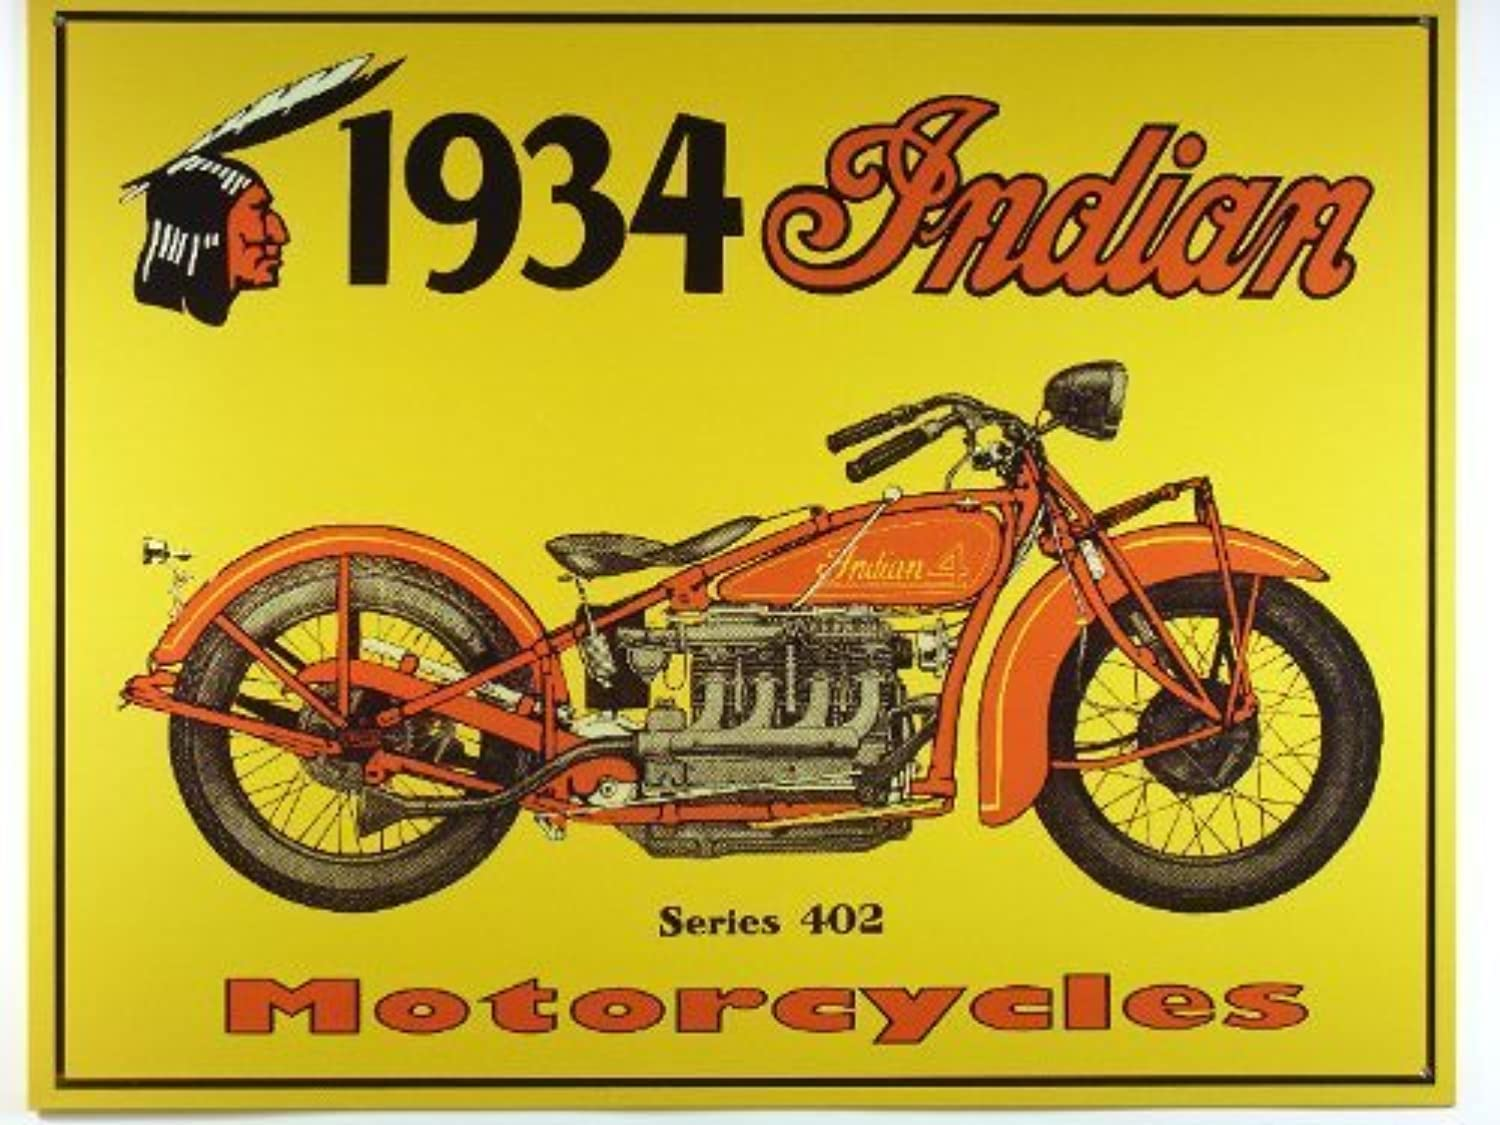 Nostalgic Indian Motorcycles Tin Sign   1934 Series 402 , 16x13 by Poster Discount